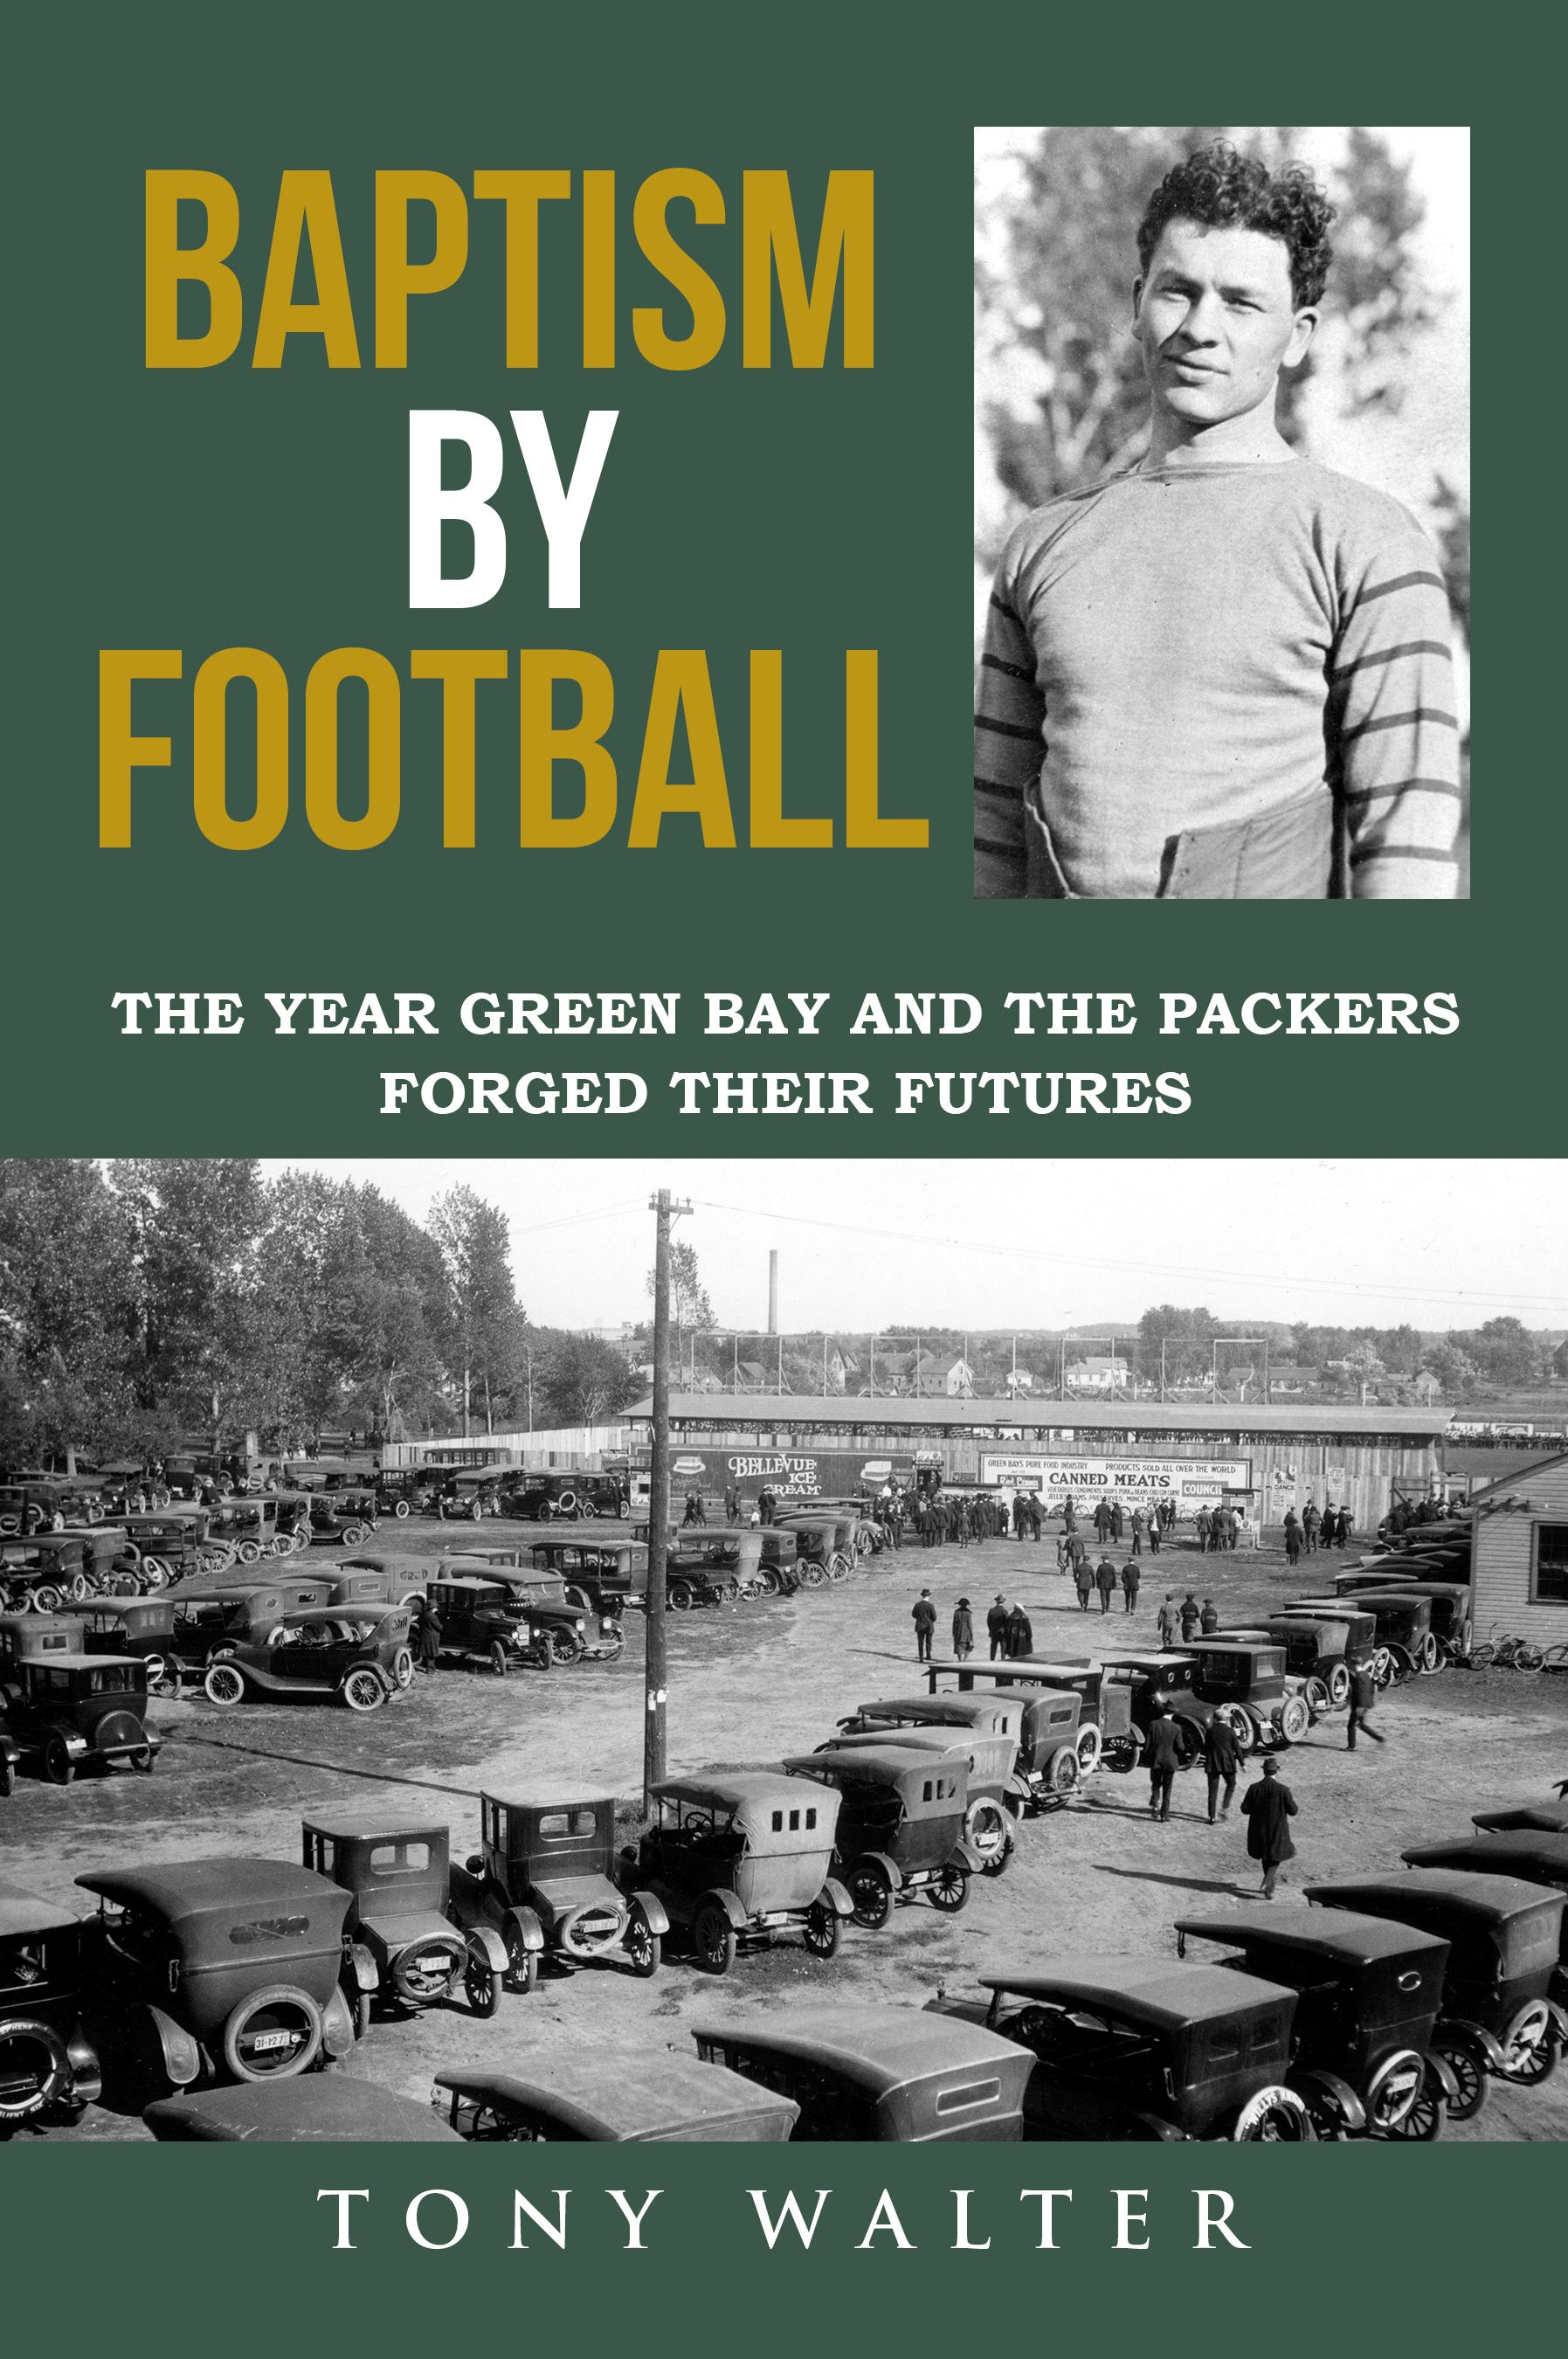 New book 'Baptism by Football' recounts critical year for Packers, Green Bay